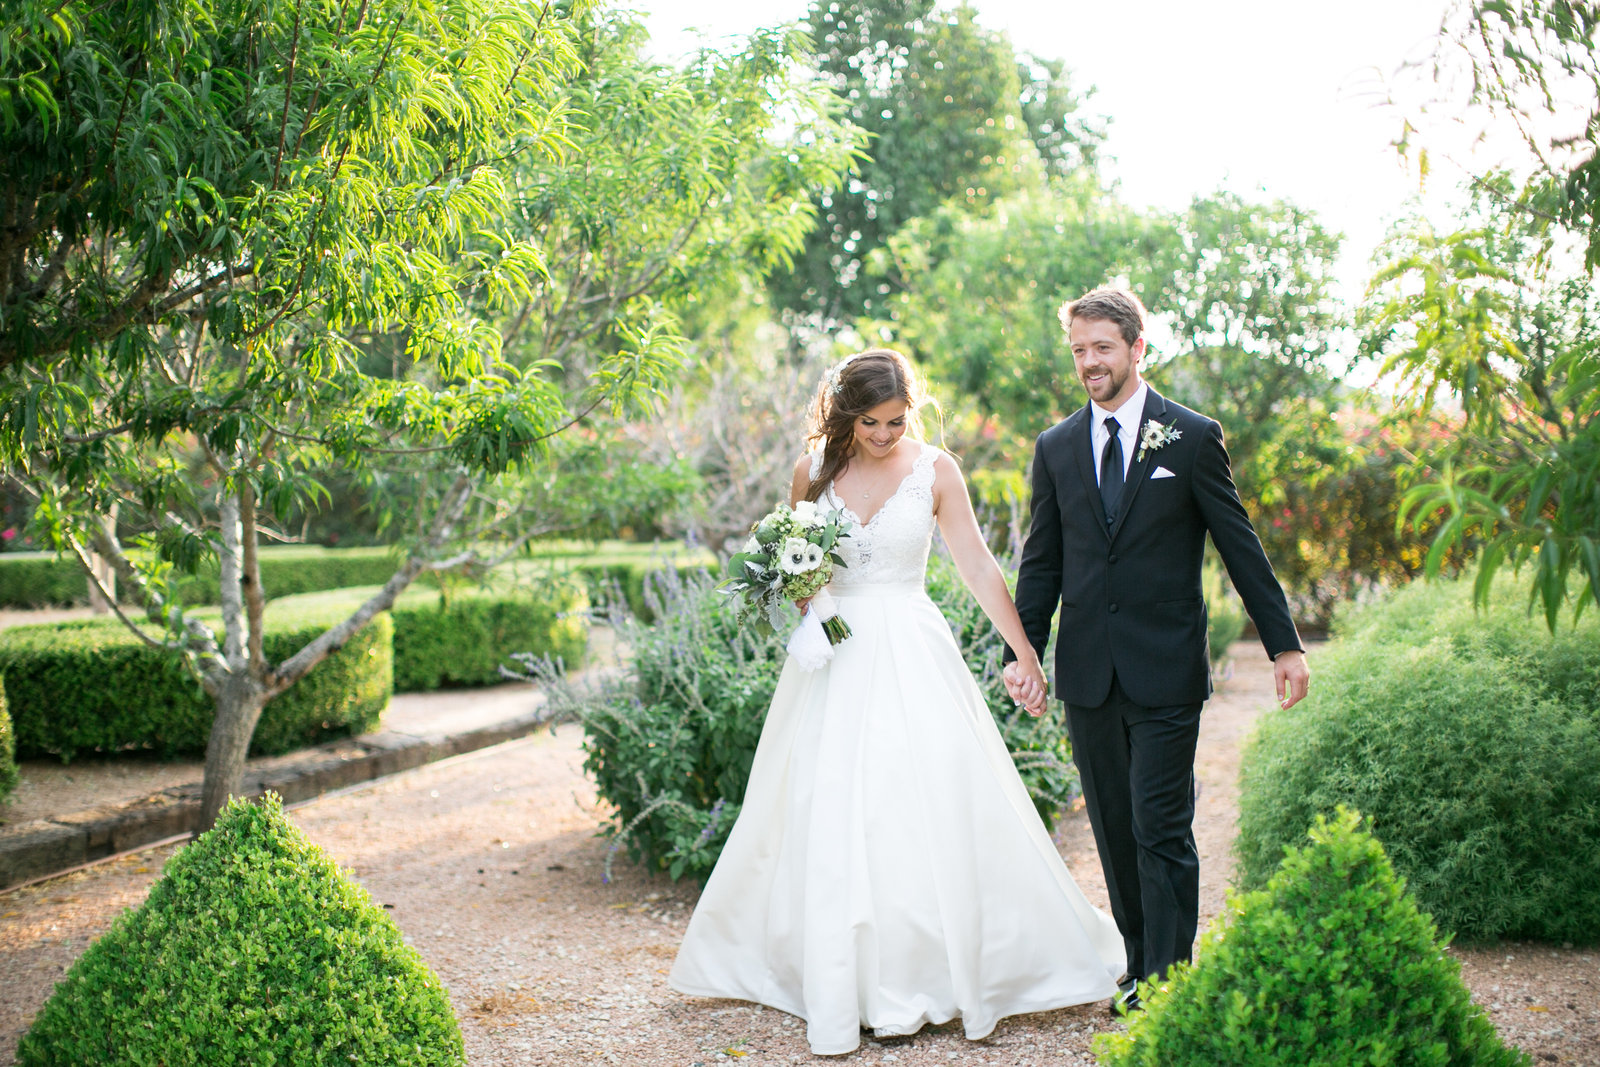 gardens-of-cranesbury-view-canyon-lake-texas-wedding-bride-and-groom-photo-27